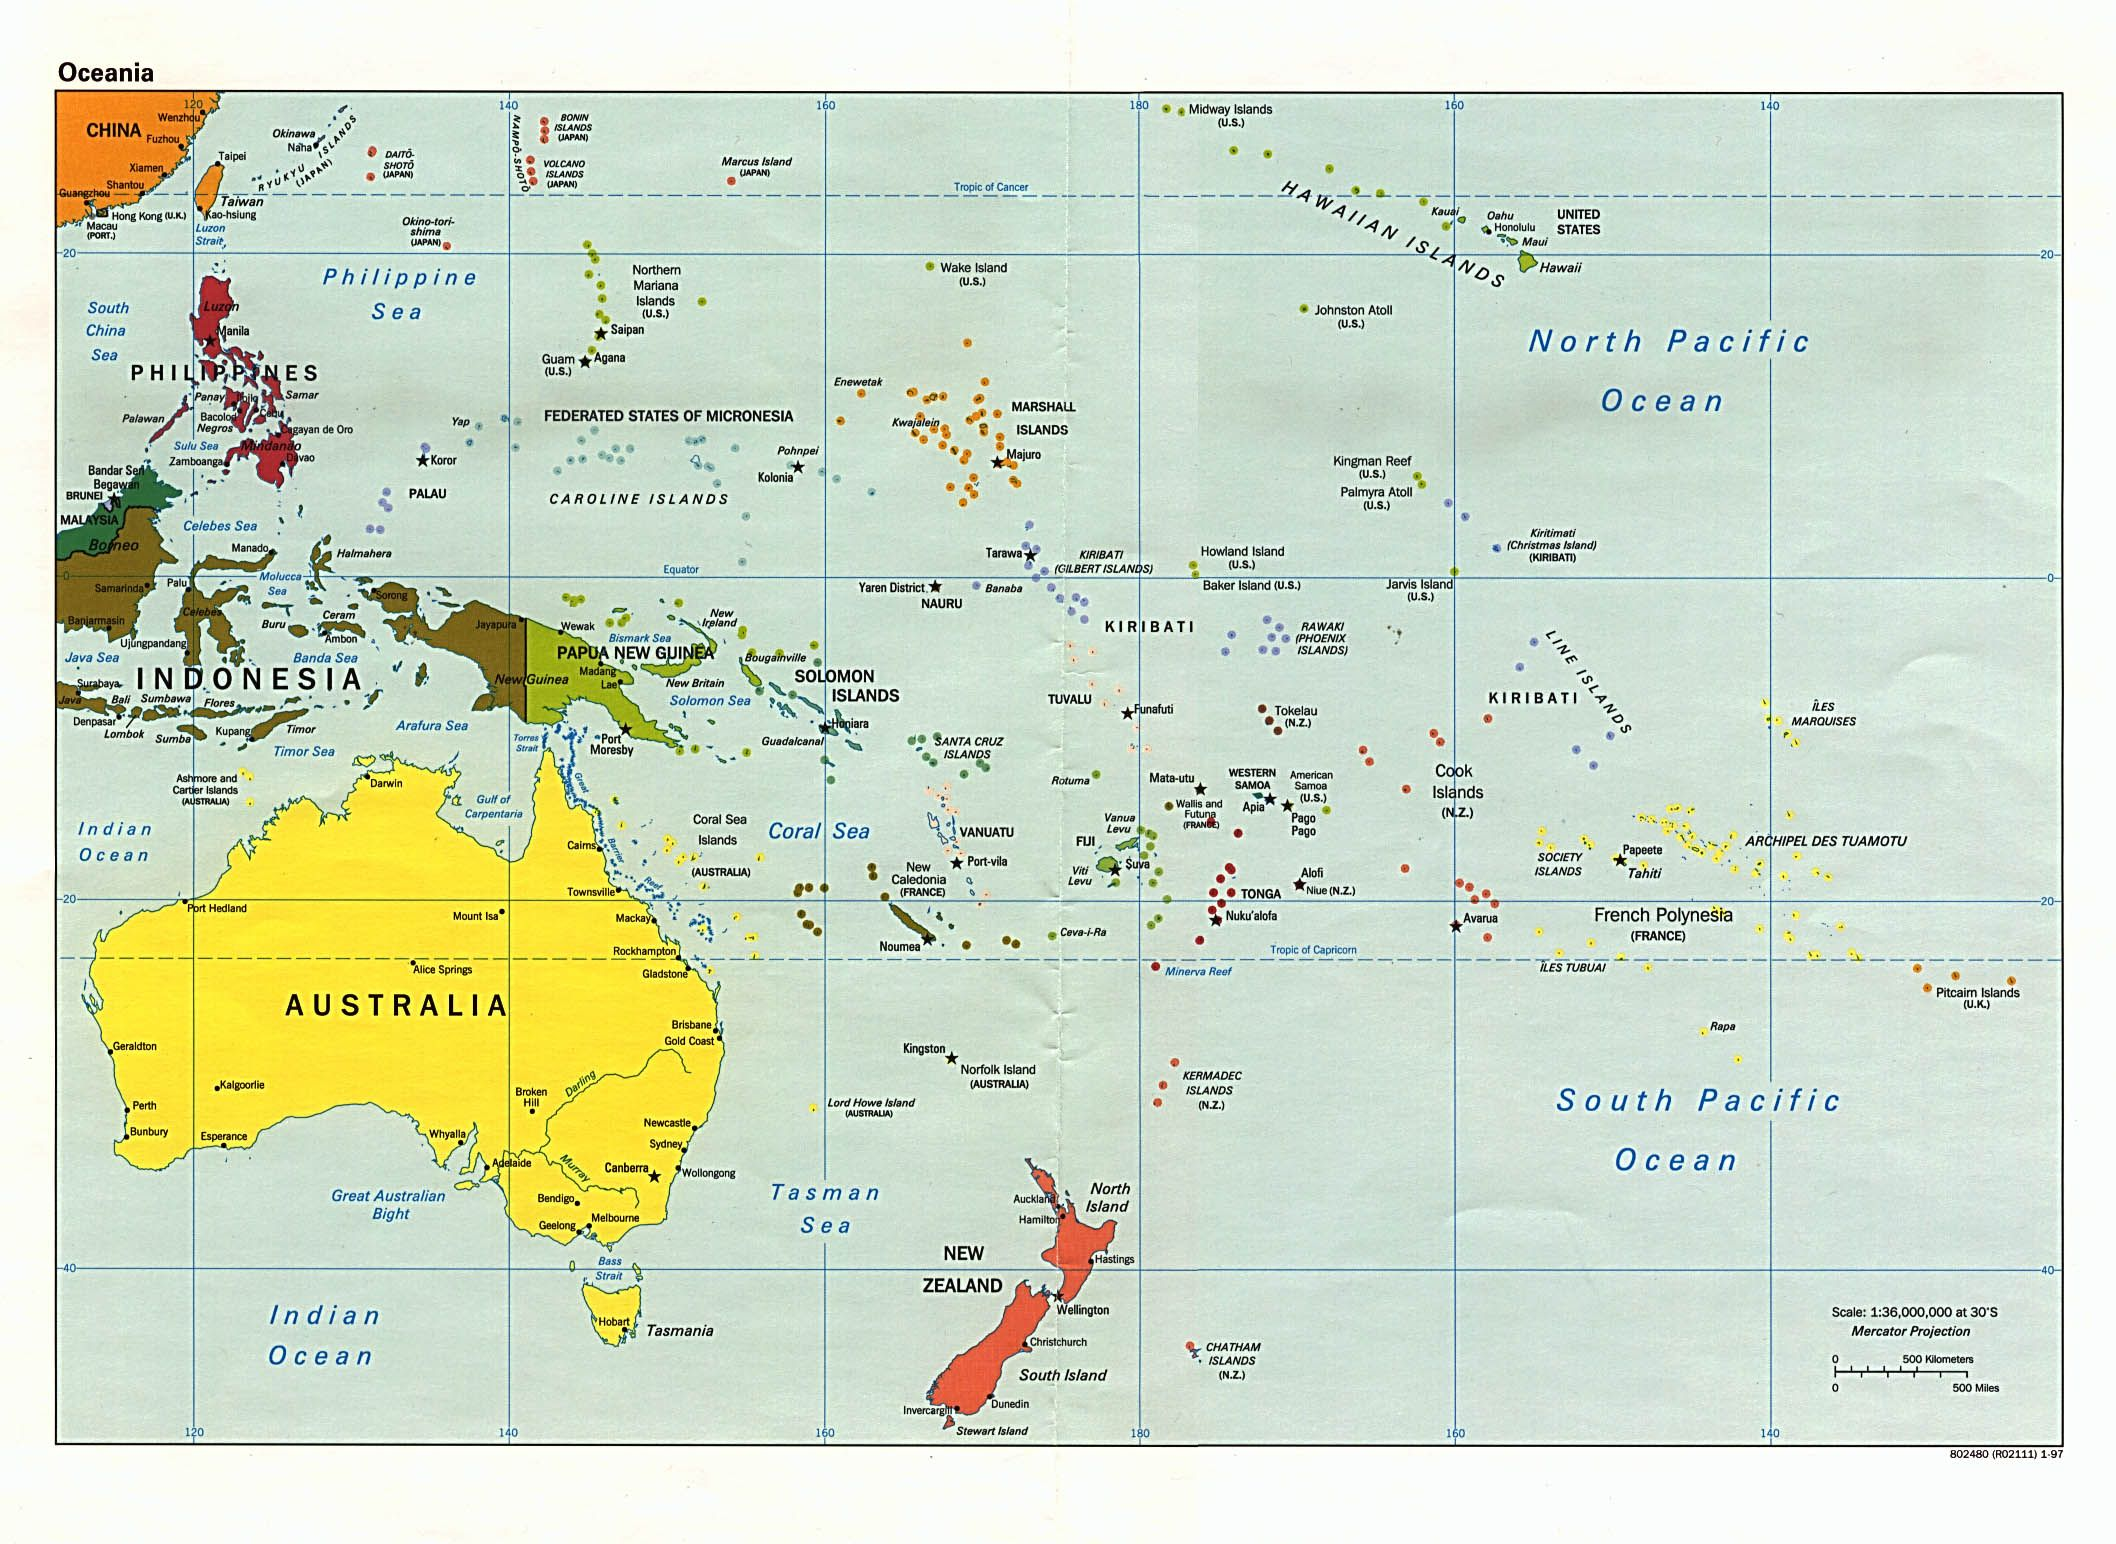 Australia, Fiji, Kiribati, Marshall Island, Papa New Guinea, Samoa, Federated States of Micronesia, Nauru, Tonga, New Zealand, Tuvalu, Vanuatu, Palau, Solomon Islands,